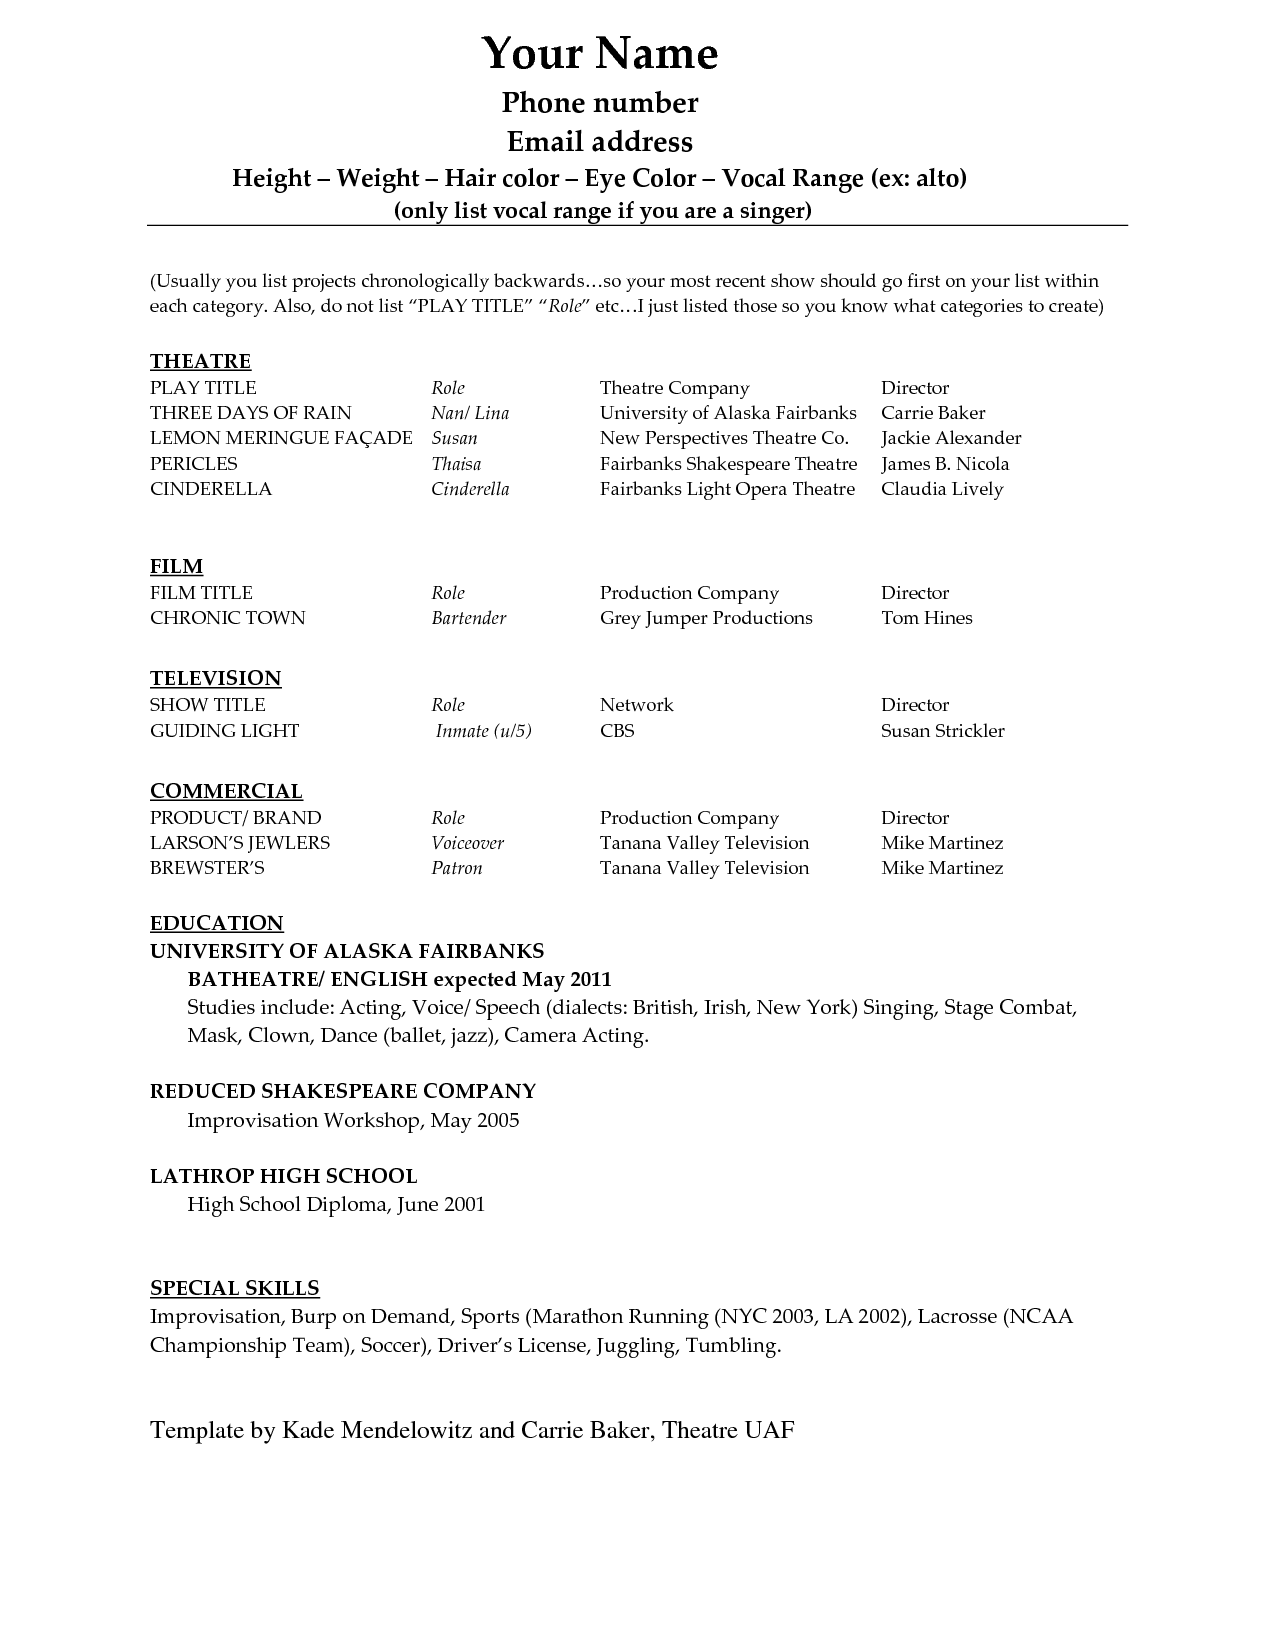 Acting Resume Template Download Free   Http://www.resumecareer.info/  Microsoft Office Resume Templates Download